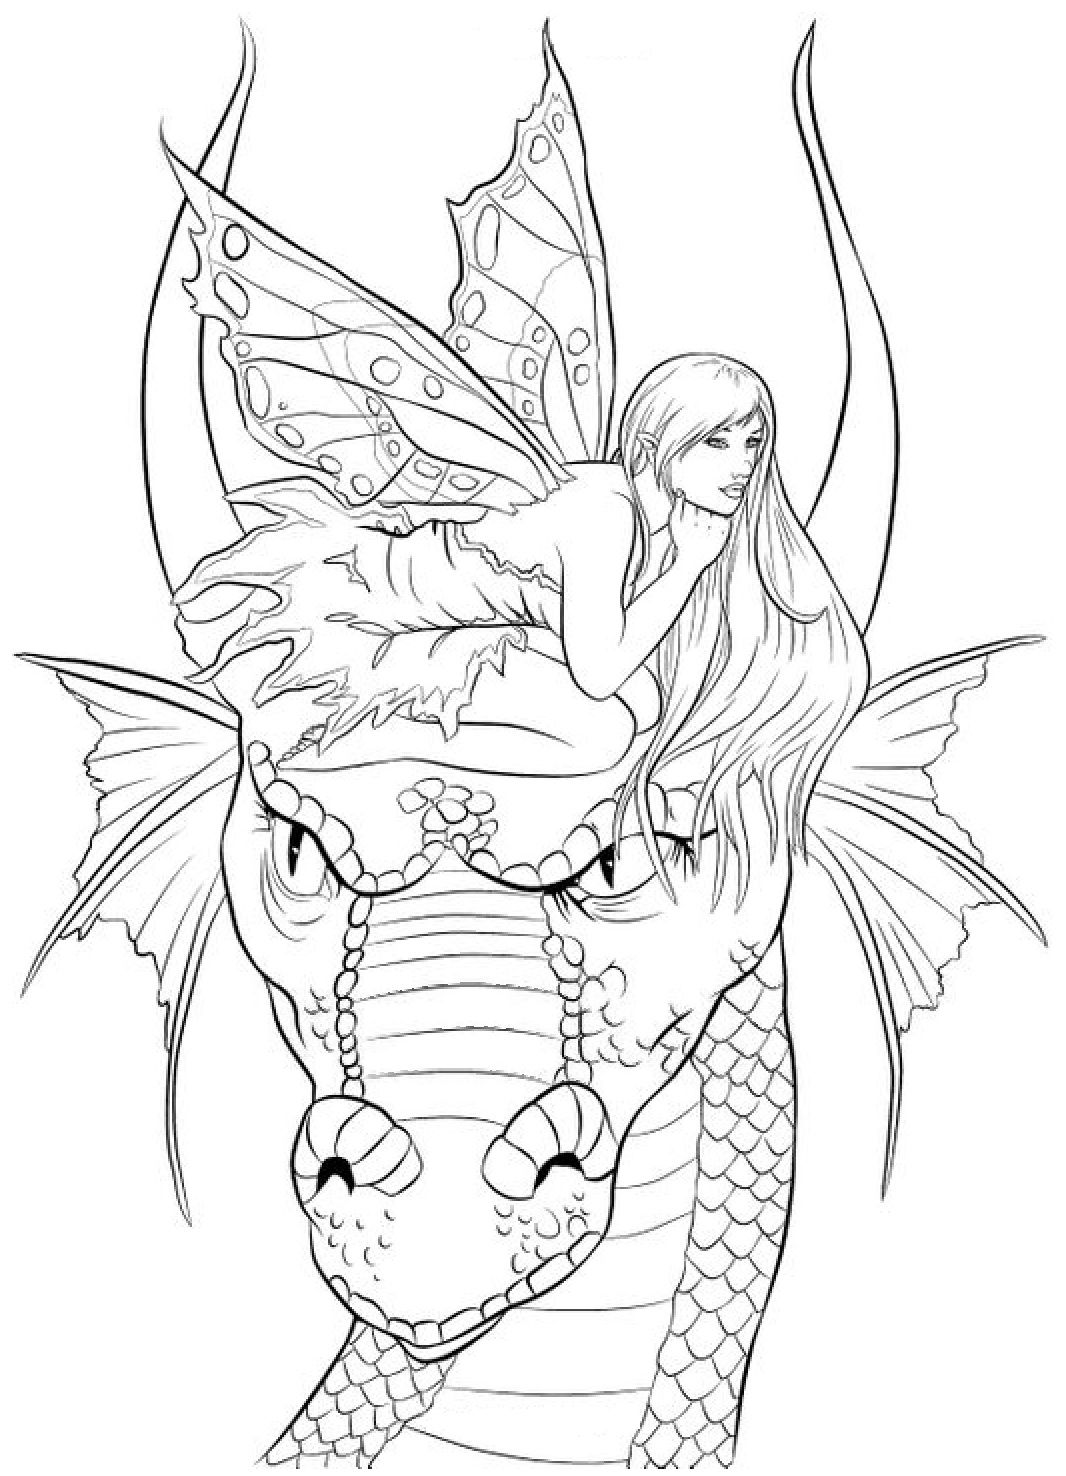 free fairies coloring pages for adults | Pin by Coloring Fun on Fantasy | Fairy coloring pages ...